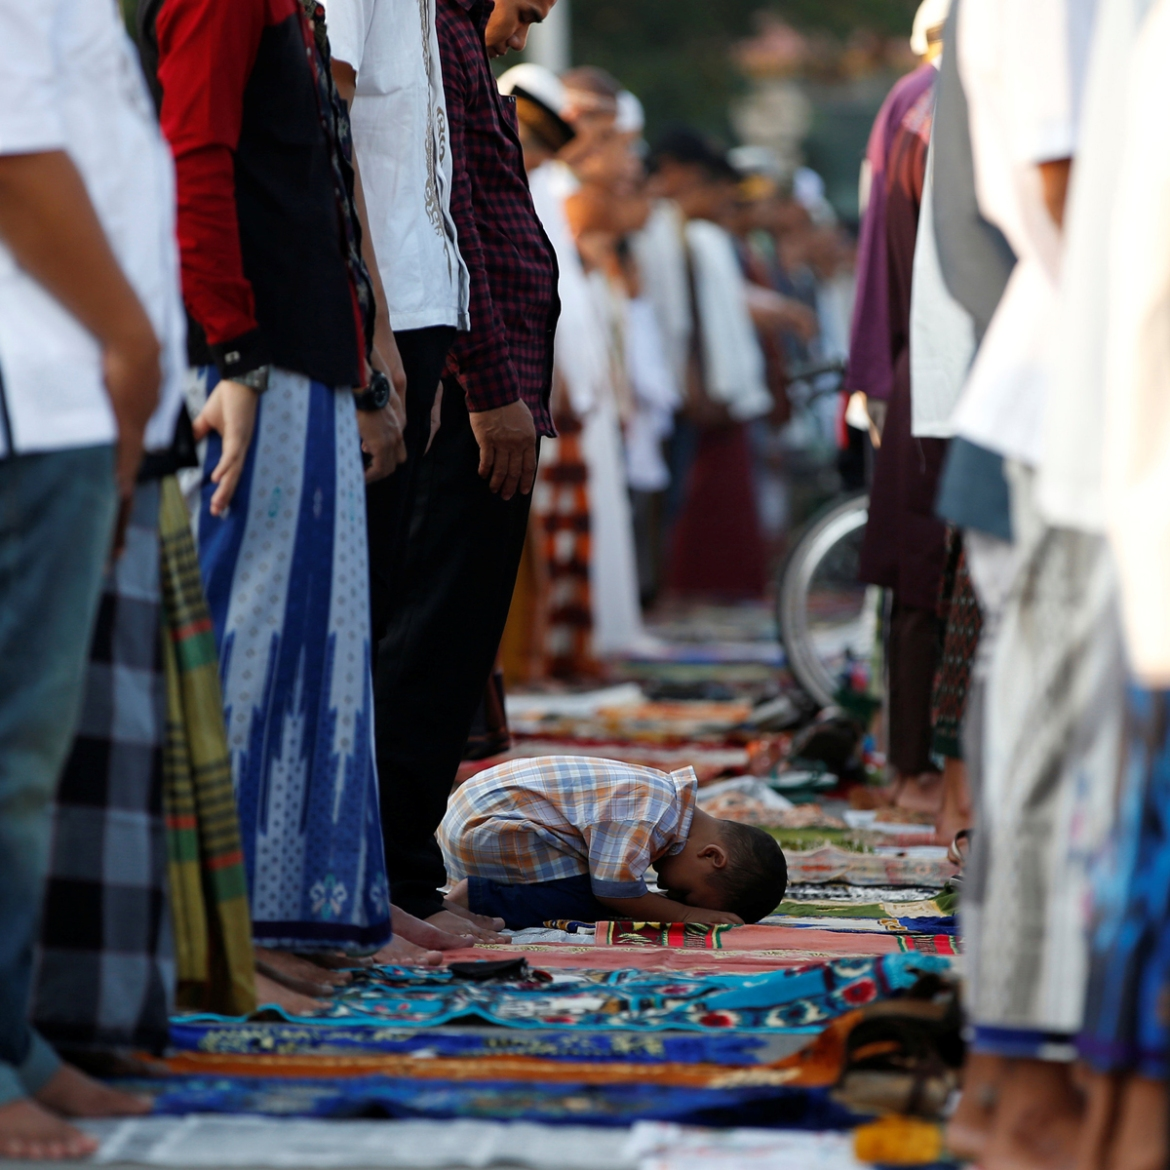 A child attends Eid al-Fitr prayers at Sunda Kelapa port in Jakarta, Indonesia. [Darren Whiteside/Reuters]